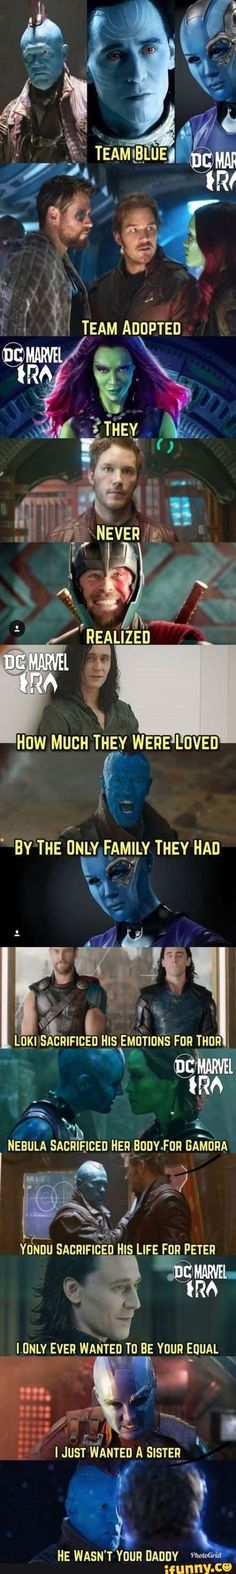 """fall memes Loki was adopted, not Thor. Nebula didn't *willingly* sacrifice her body for Gamora. Gamora beat her fair and square, Thanos """"upgraded"""" Nebula effectively as punishment, and Nebu Marvel Avengers, Hero Marvel, Funny Marvel Memes, Marvel Jokes, Dc Memes, Avengers Memes, Marvel Dc Comics, Funny Memes, Funny Quotes"""